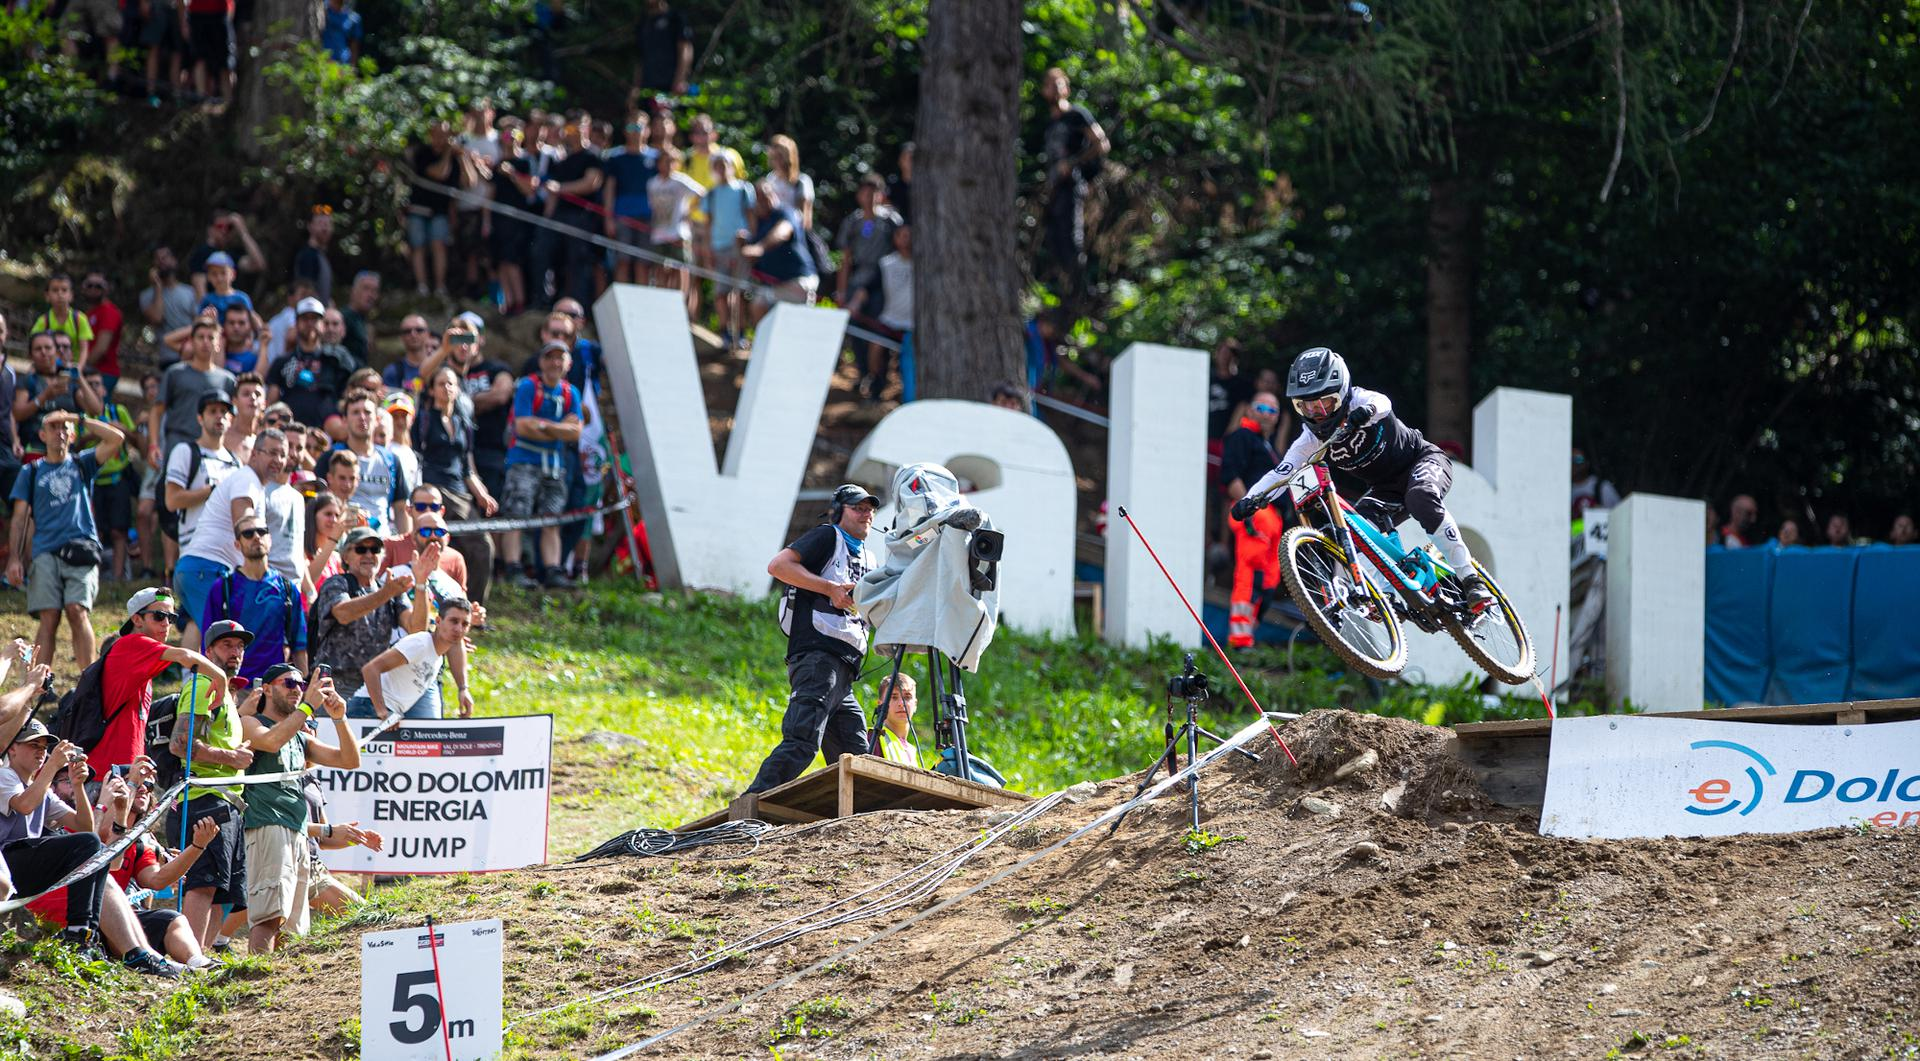 , 2020 Mountain Bike World Championships Delayed to 2021 – Downhill, Cross Coutnry, Trials, Four-Cross at Val di Sole